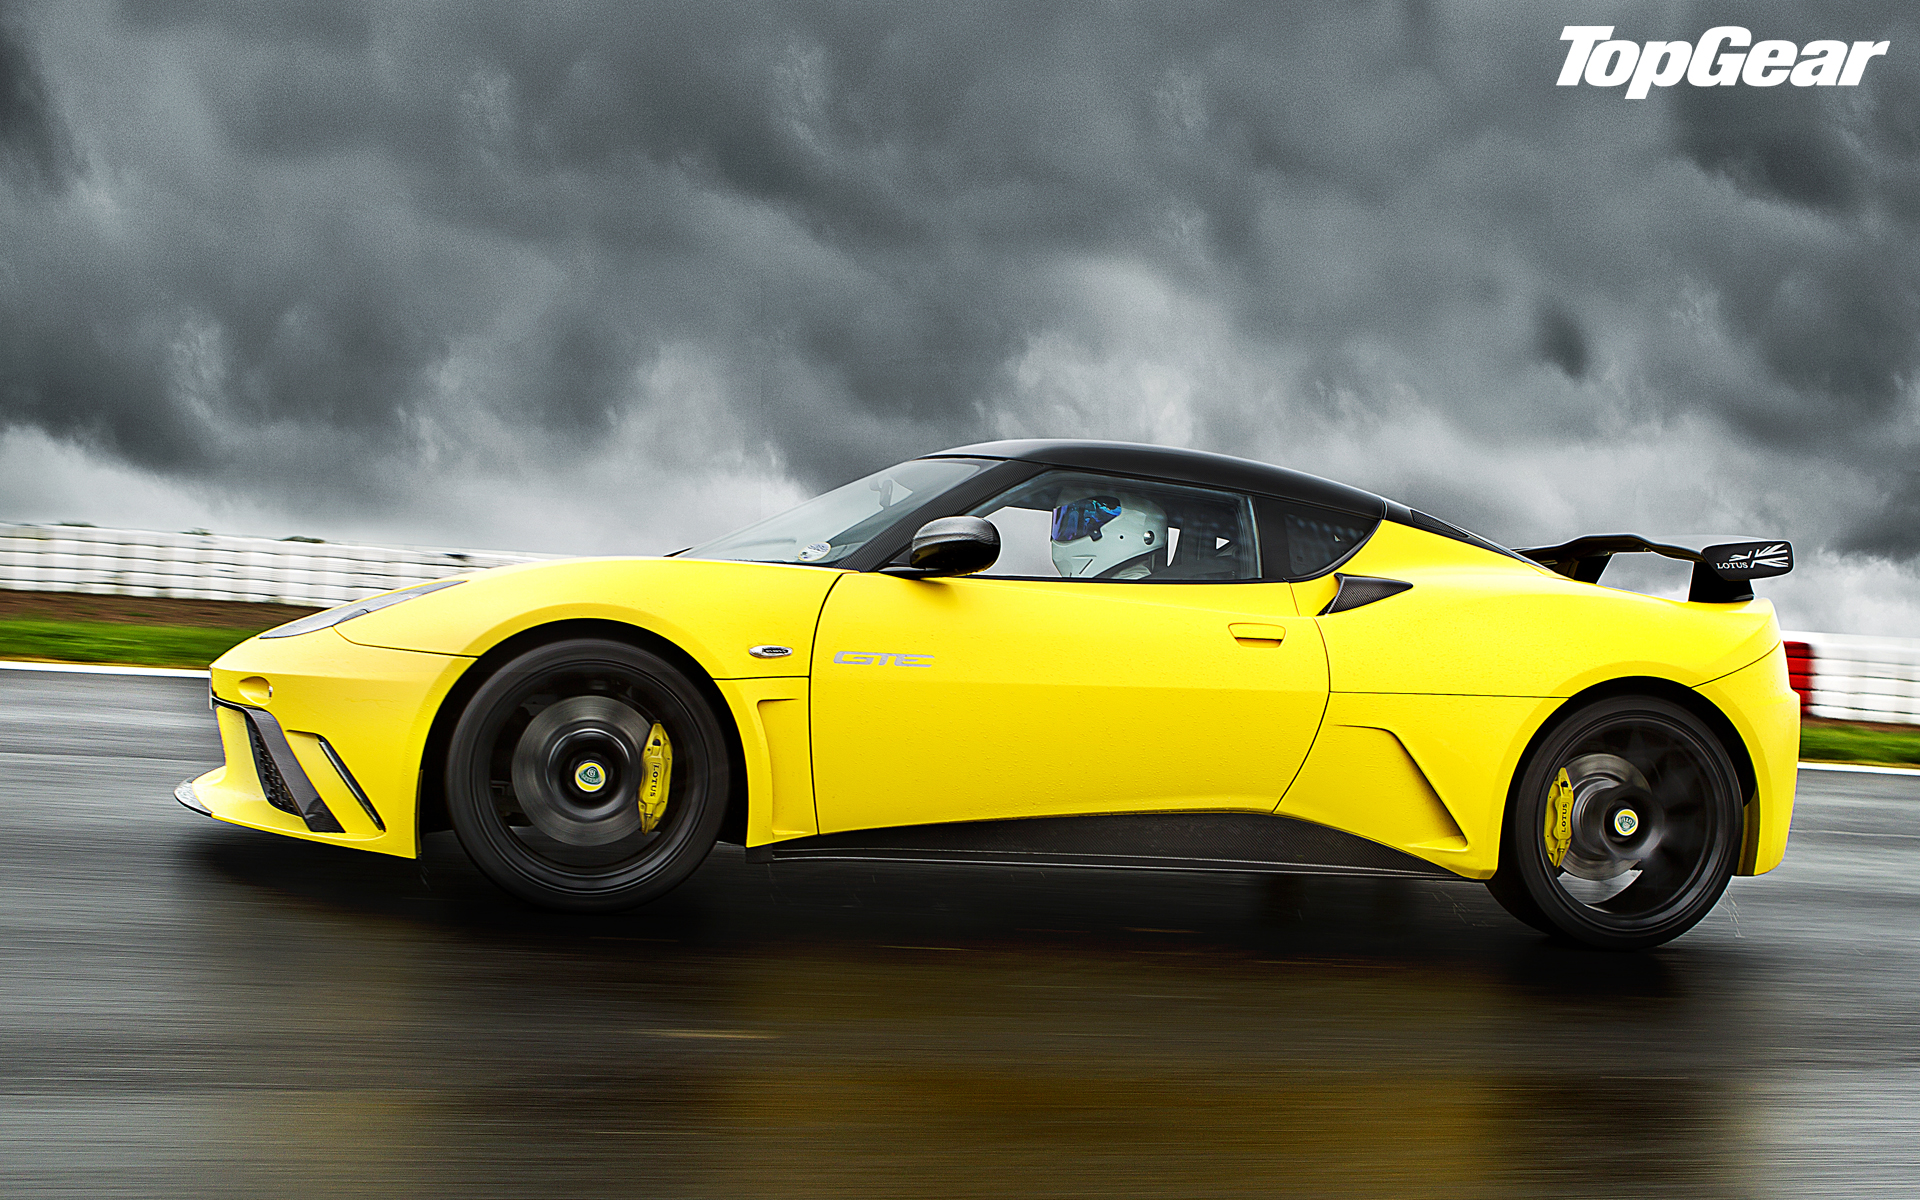 Lotus Evora Yellow